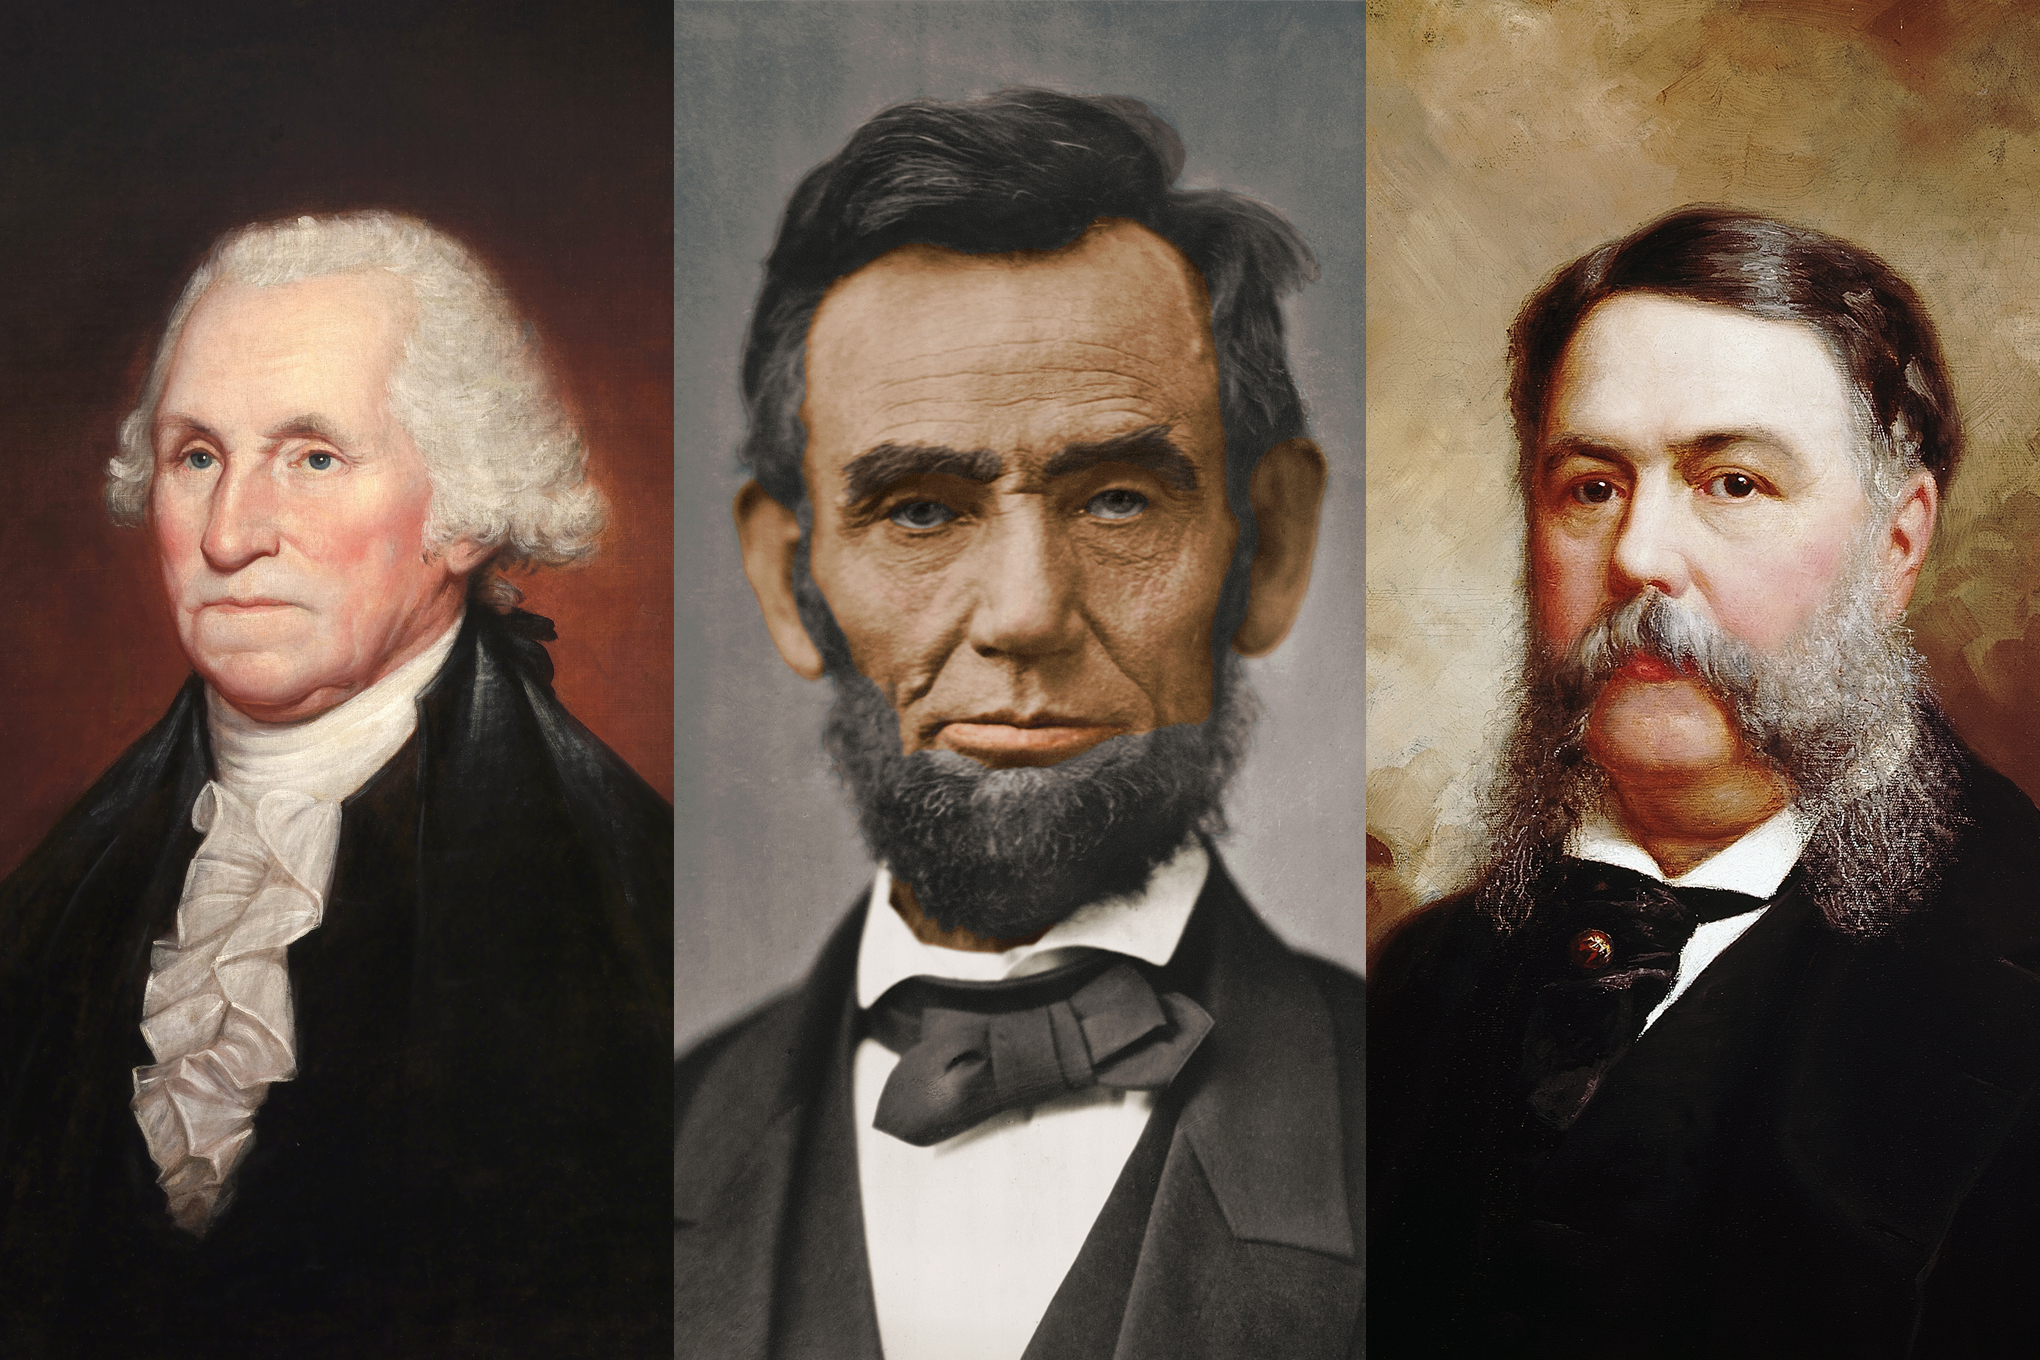 (L-R) Former U.S. Presidents George Washington, Abraham Lincoln, and Chester Arthur